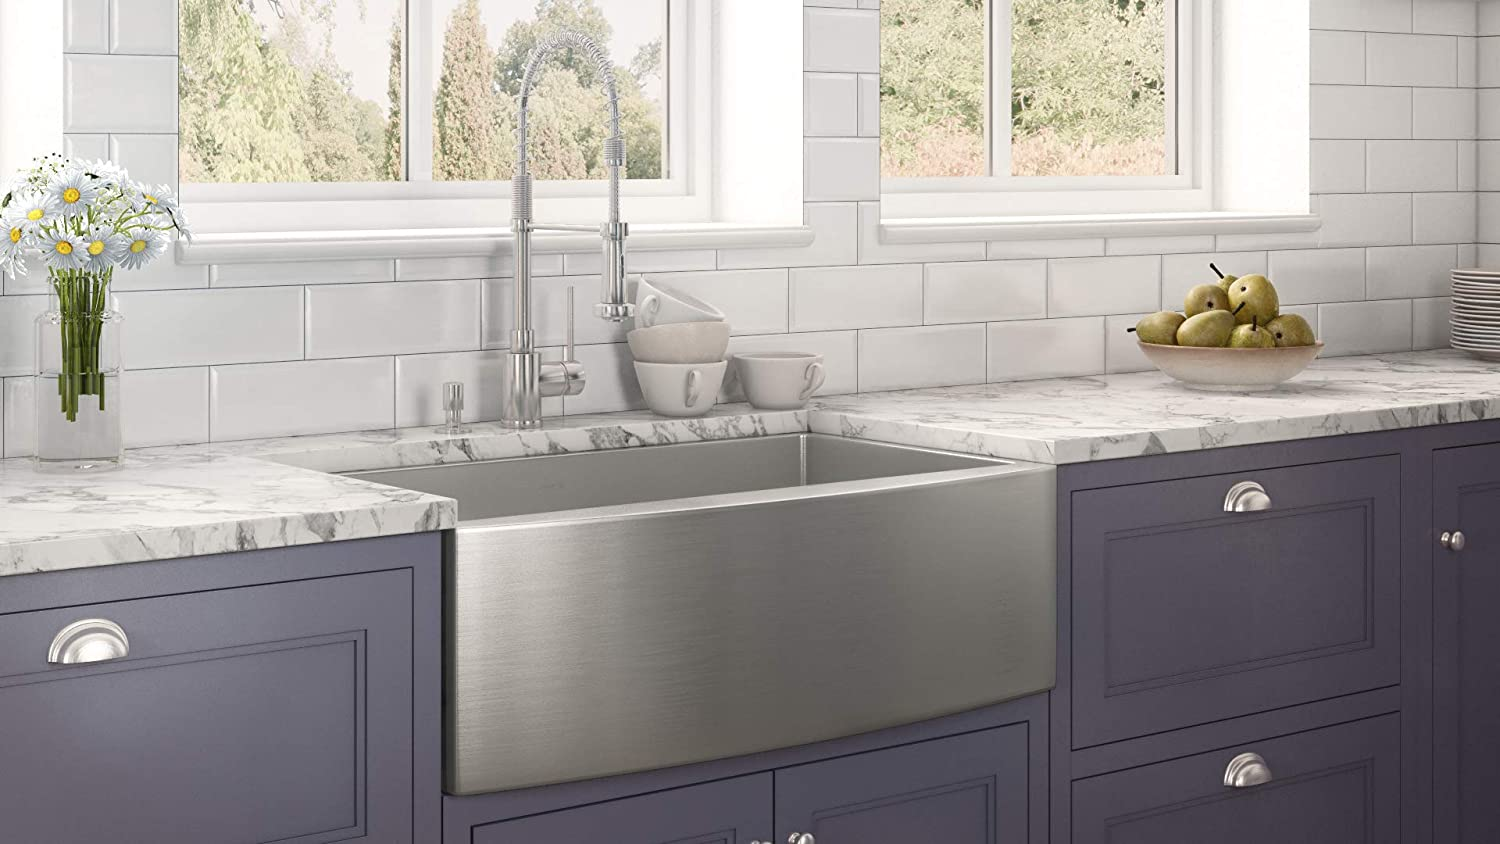 best farmhouse sinks for townhouses top 4 picks dispozal on farmhouse sink lowest price id=22877